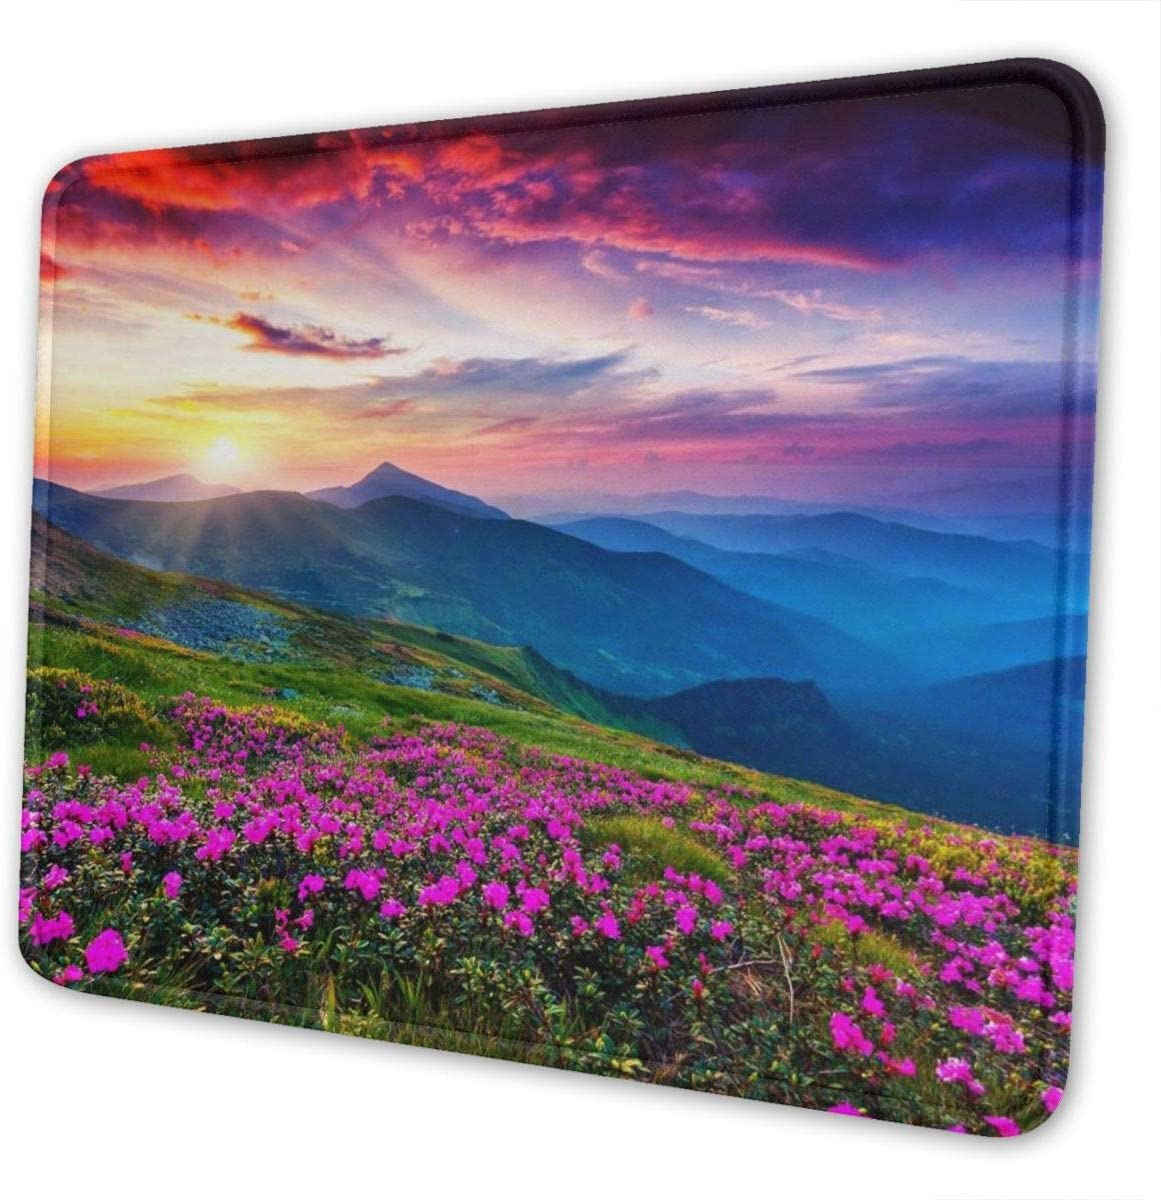 Mouse Pad Nature Purple Flowers Meadow Mountain Scenic Office Accessories Rectangle Waterproof Mousepad with Stitched Edge Premium-Textured Non-Slip Rubber Base 10×12 inch Mouse Mat